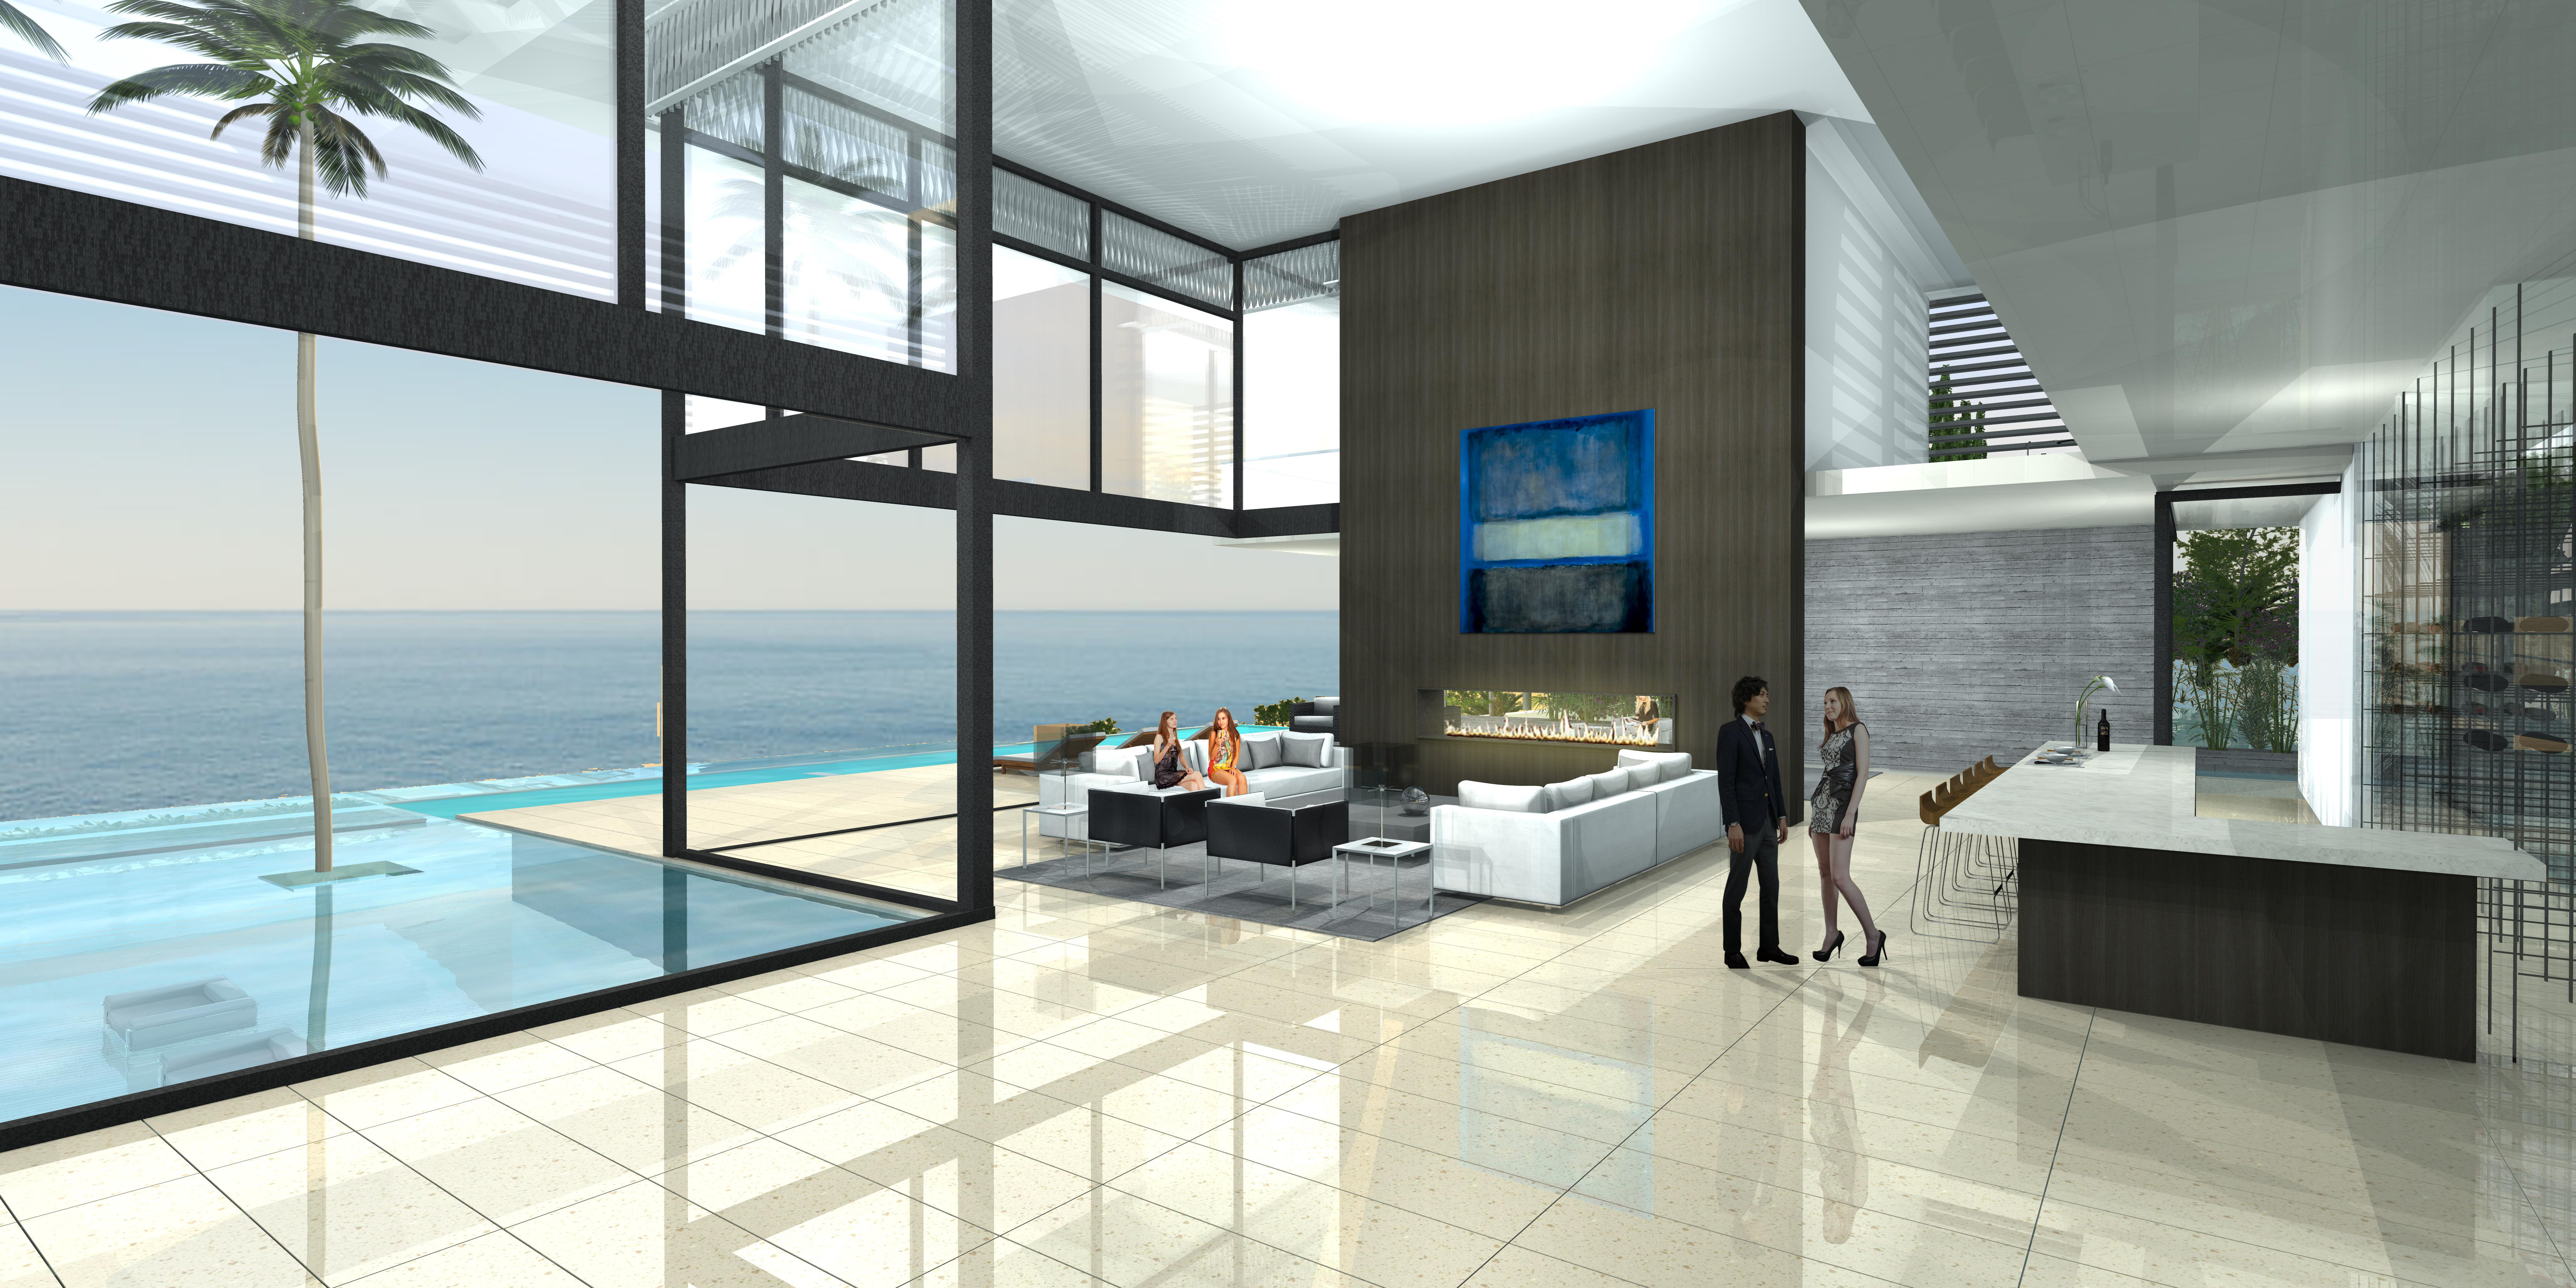 Southern California Luxury Homes New Project Southern California Luxury  Homes The Strand Project ...